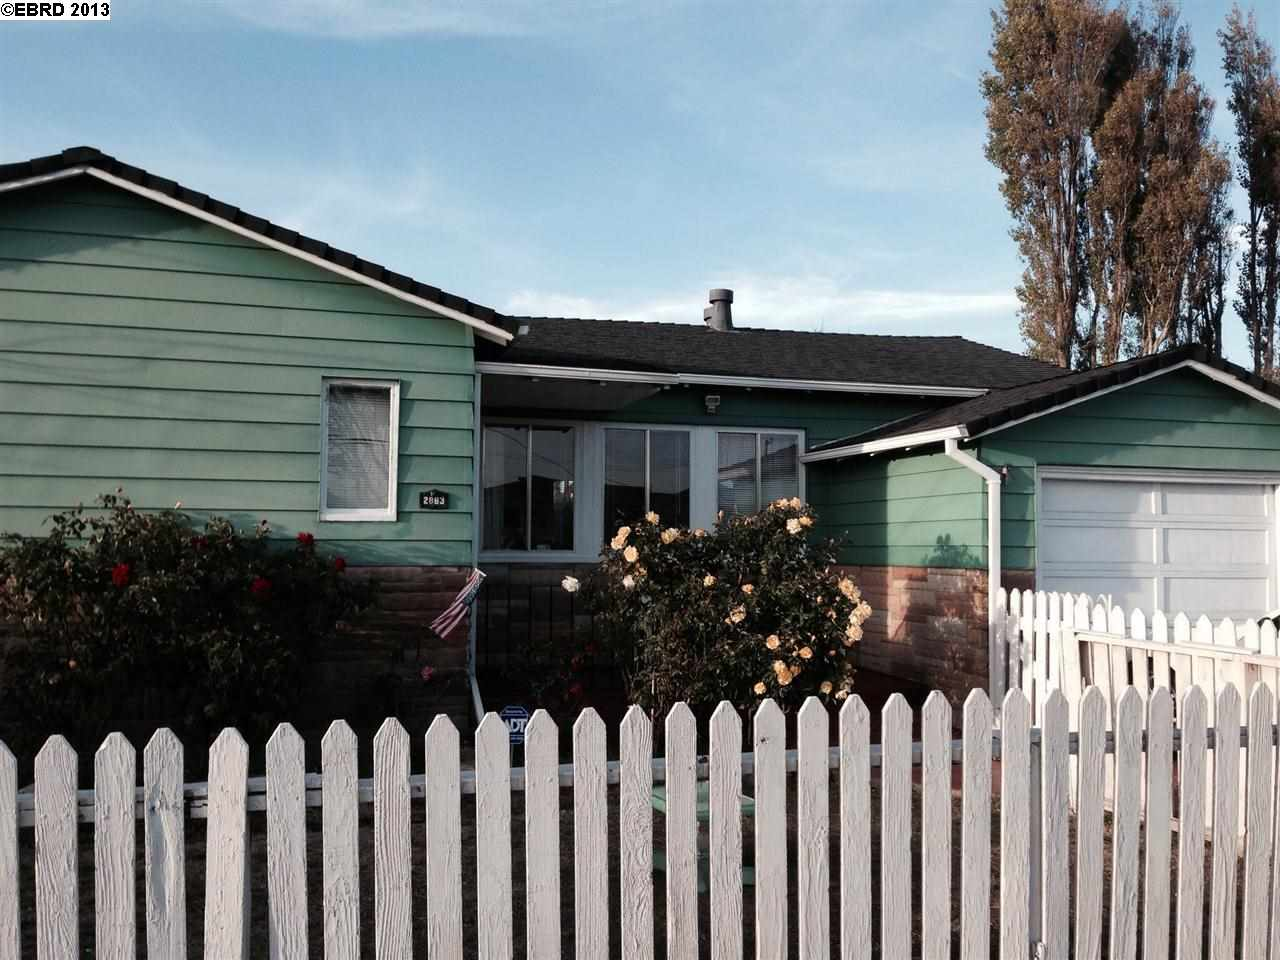 2863 RHEEM AVE, RICHMOND, CA 94804